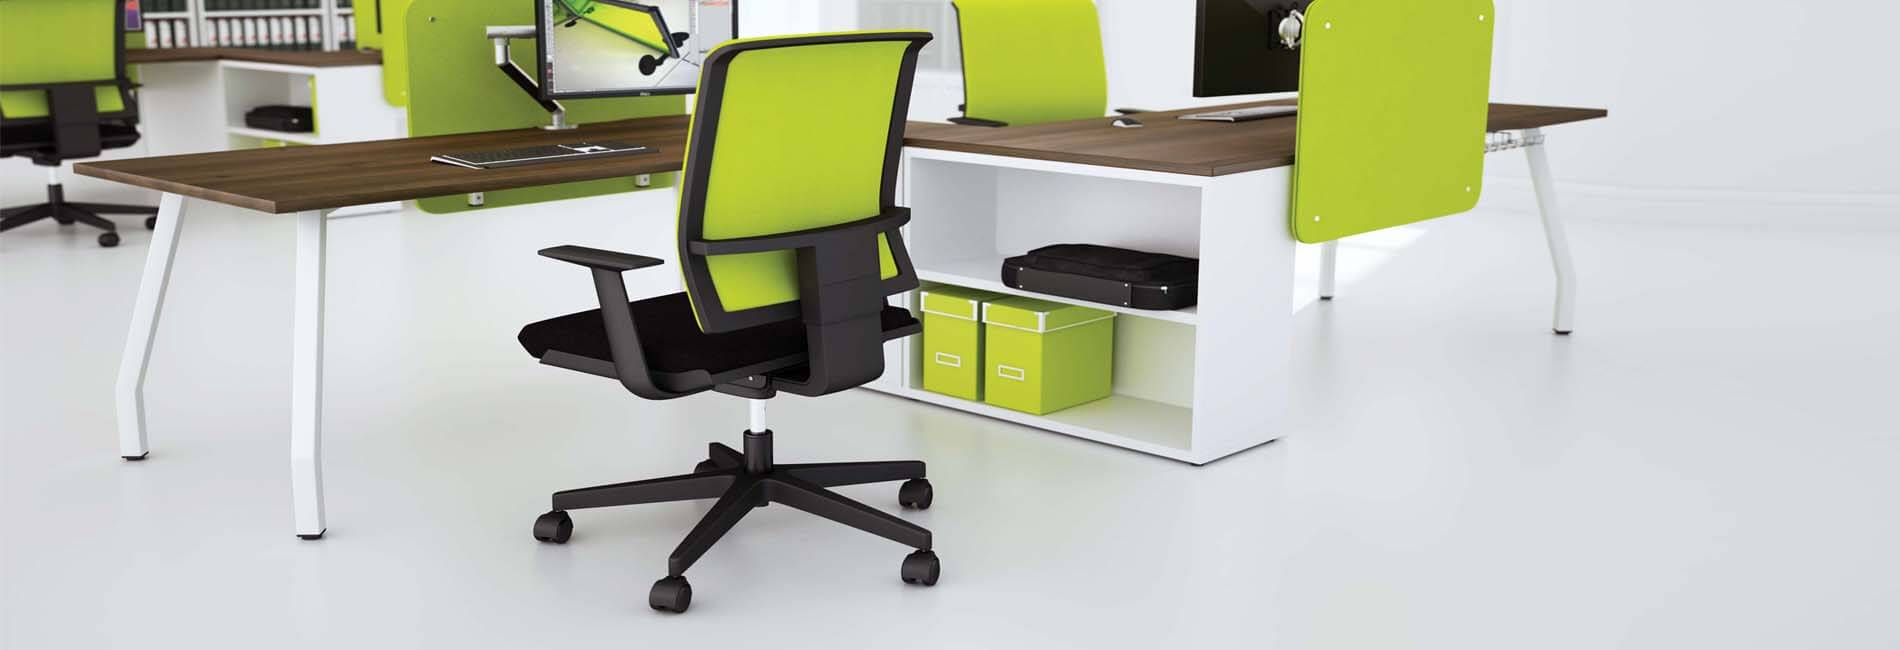 Cool Office Chairs Colorful Desk